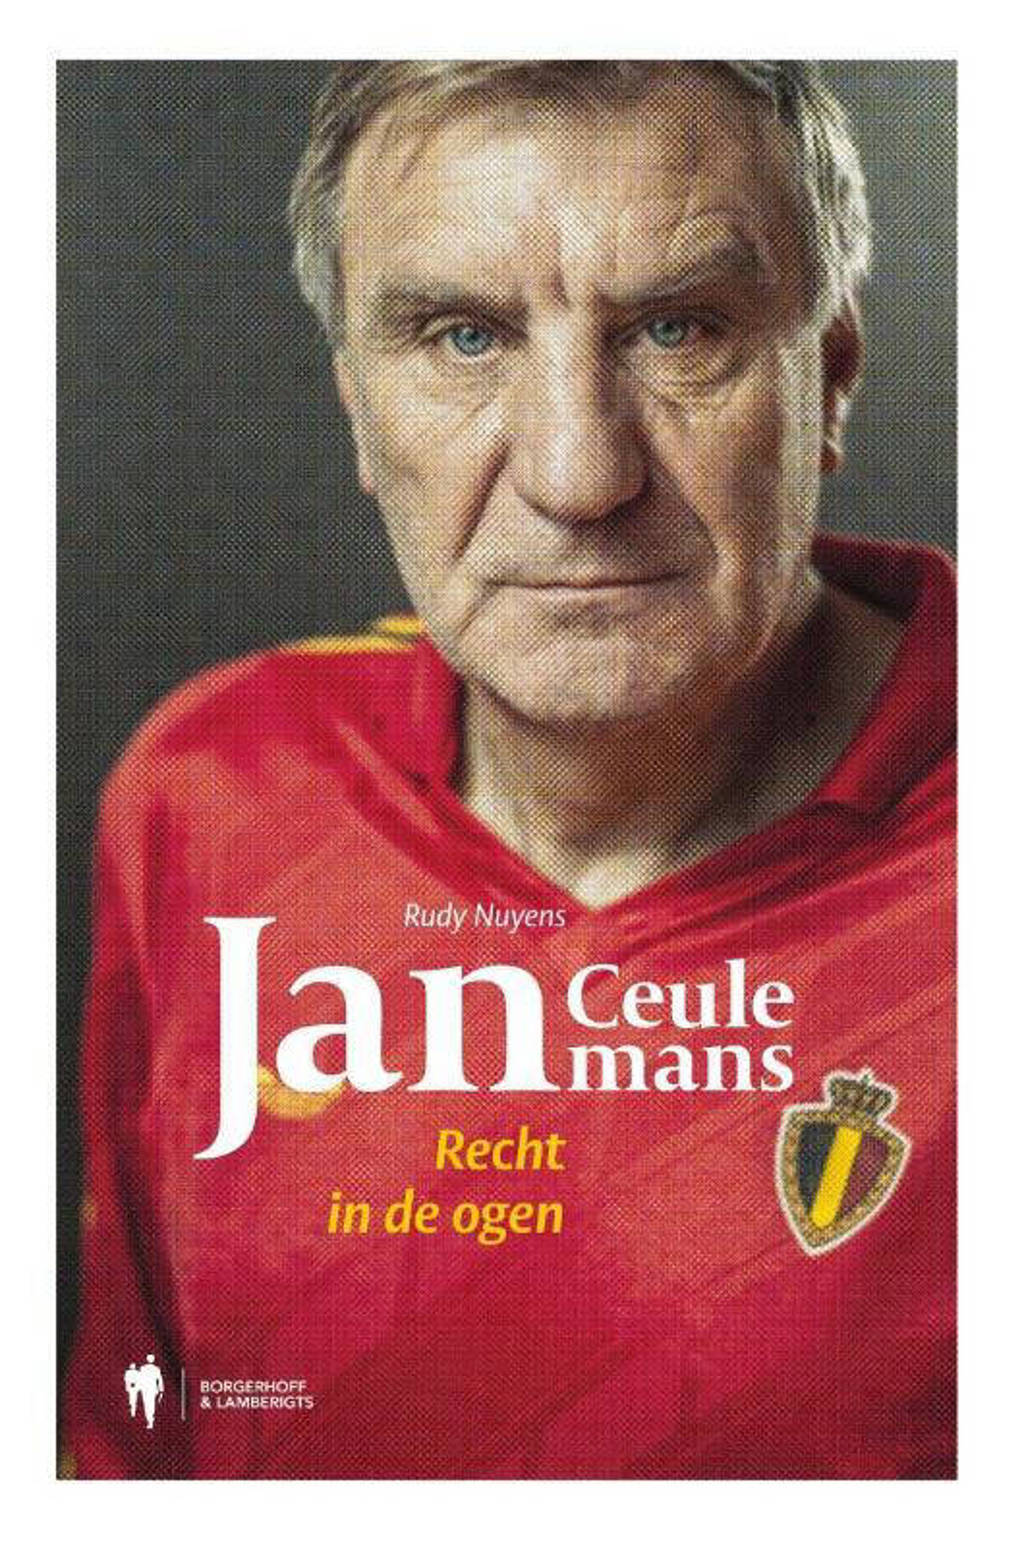 Jan Ceulemans - Rudy Nuyens